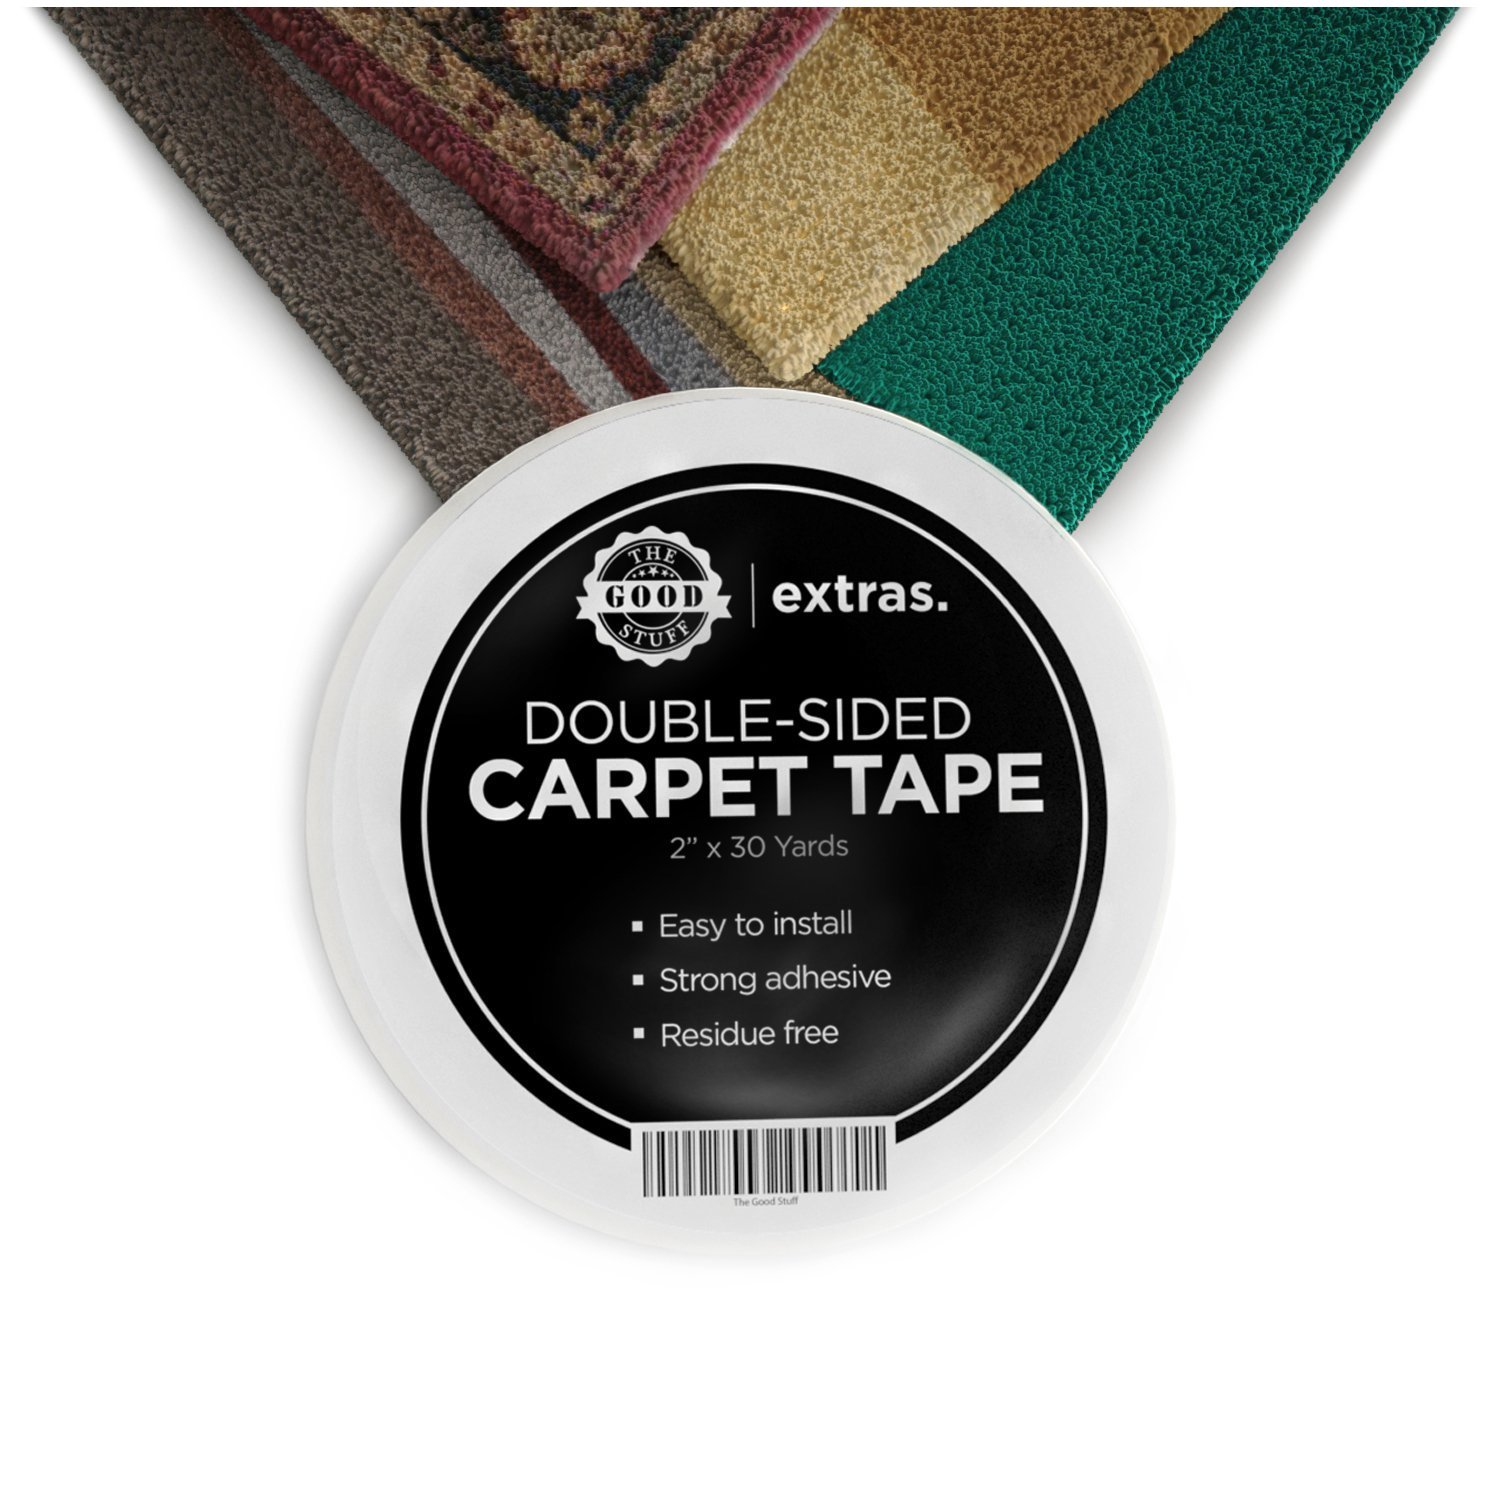 Strongest Double Sided Carpet Tape - Heavy Duty Rug Gripper Tapes for Mats, Rugs, Carpets and Runners. Secure, Non Slip, Extreme Strength, Two Sided, Sticky Tape [2 Inches x 75 Feet] by The Good Stuff (Image #1)